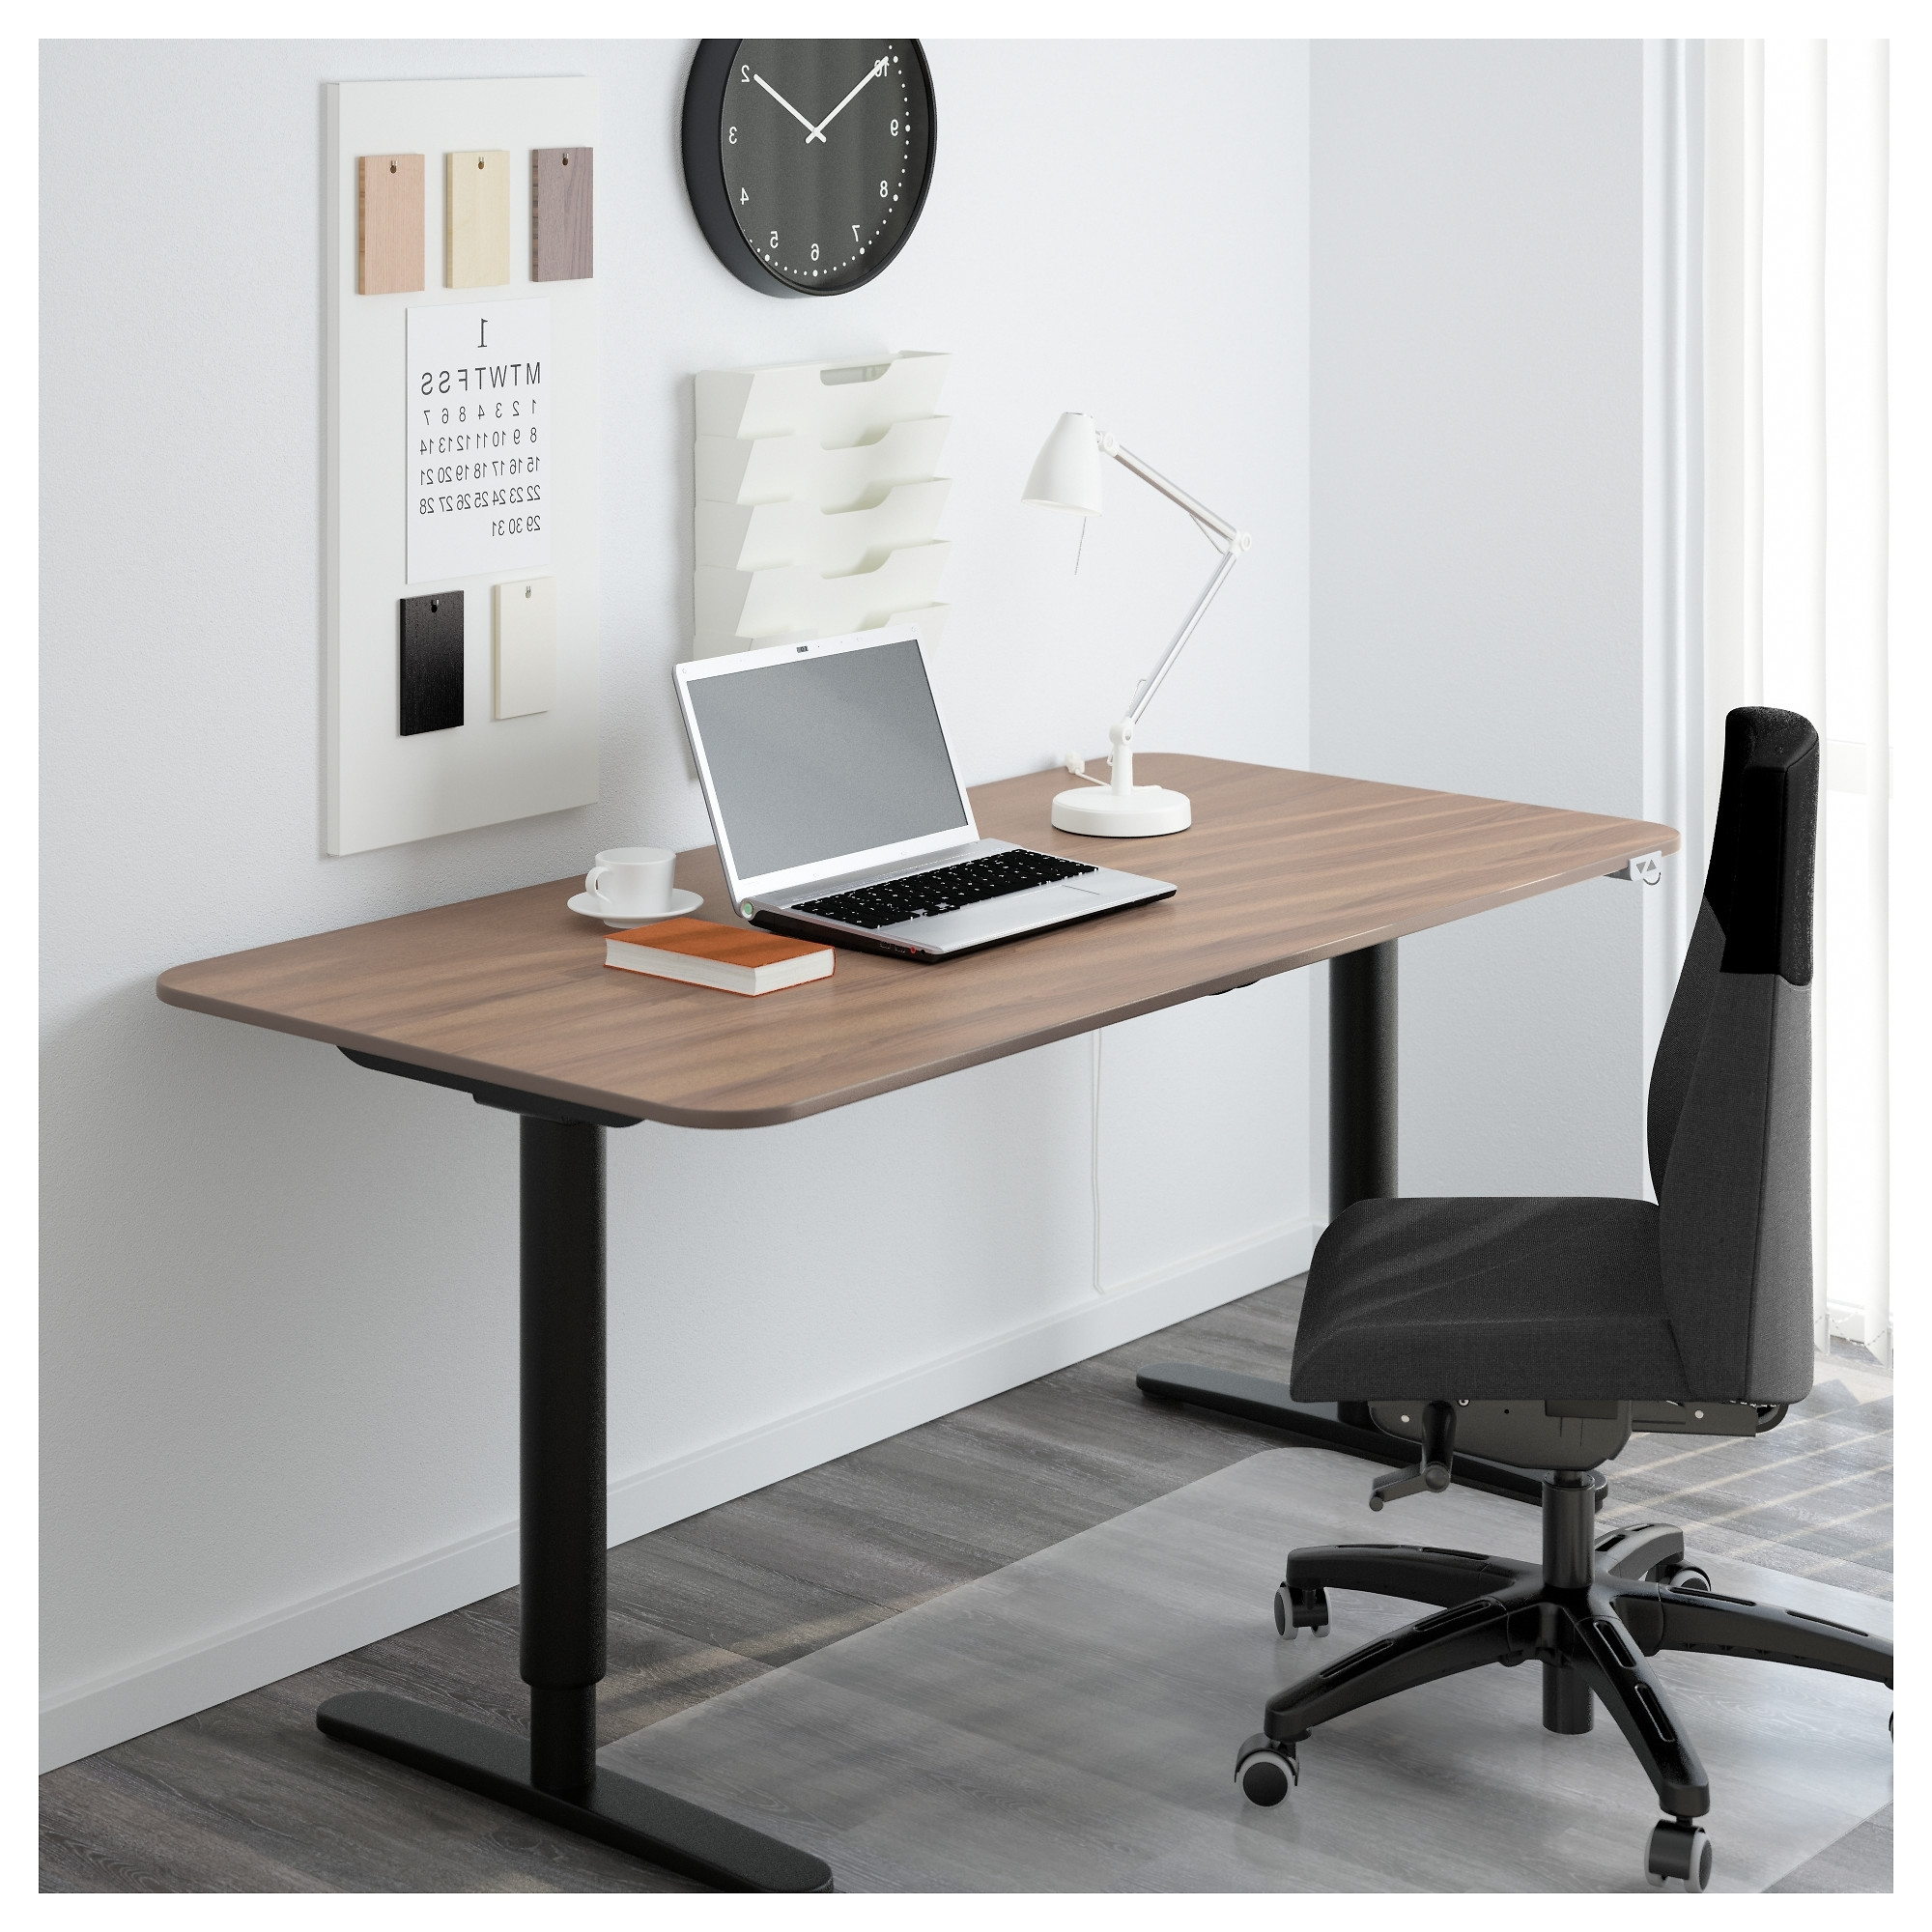 Bekant Desk Sit/stand – Black Brown/white – Ikea For Fashionable Ikea Mn Computer Desks (View 1 of 20)